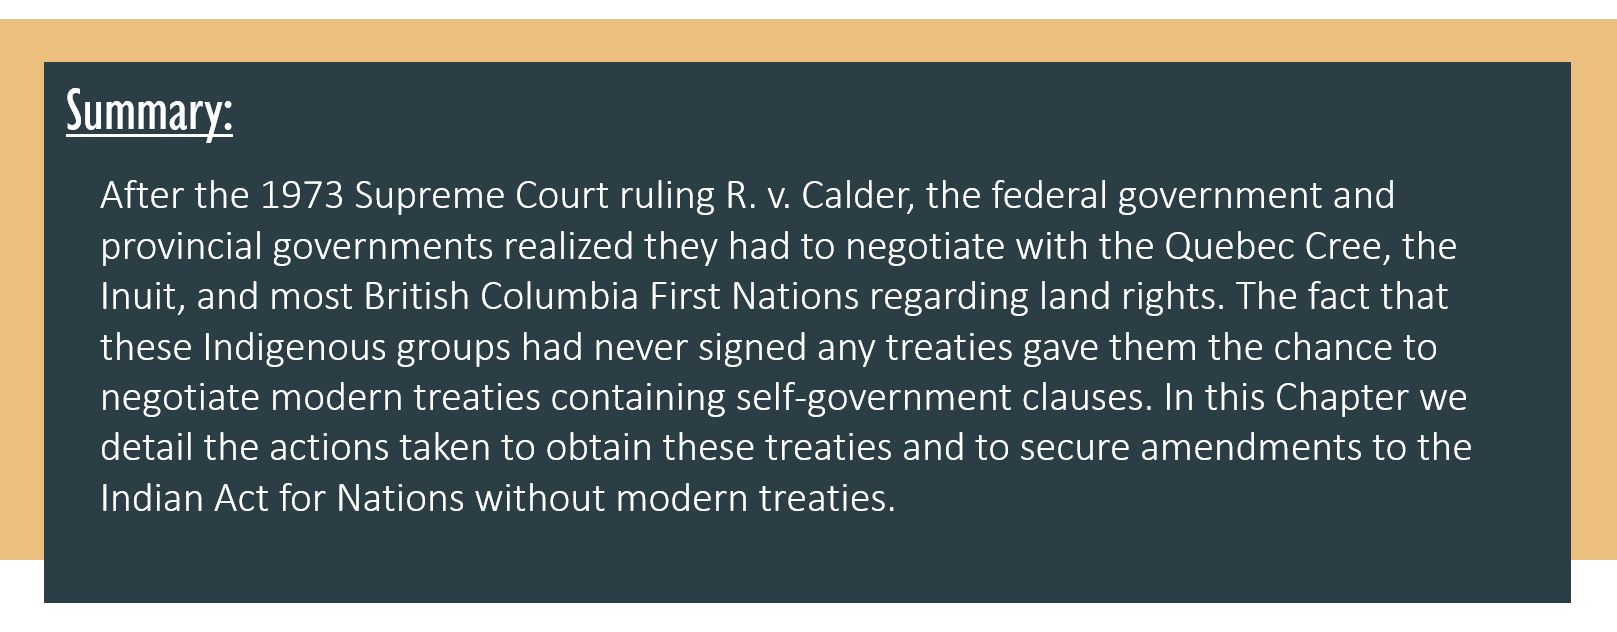 Summary: After the 1973 Supreme Court ruling R. v. Calder, the federal government and provincial governments realized they had to negotiate with the Quebec Cree, the Inuit, and most British Columbia First Nations regarding land rights. The fact that these Indigenous groups had never signed any treaties gave them the chance to negotiate modern treaties containing self-government clauses. In this Chapter we detail the actions taken to obtain these treaties and to secure amendments to the Indian Act for Nations without modern treaties.